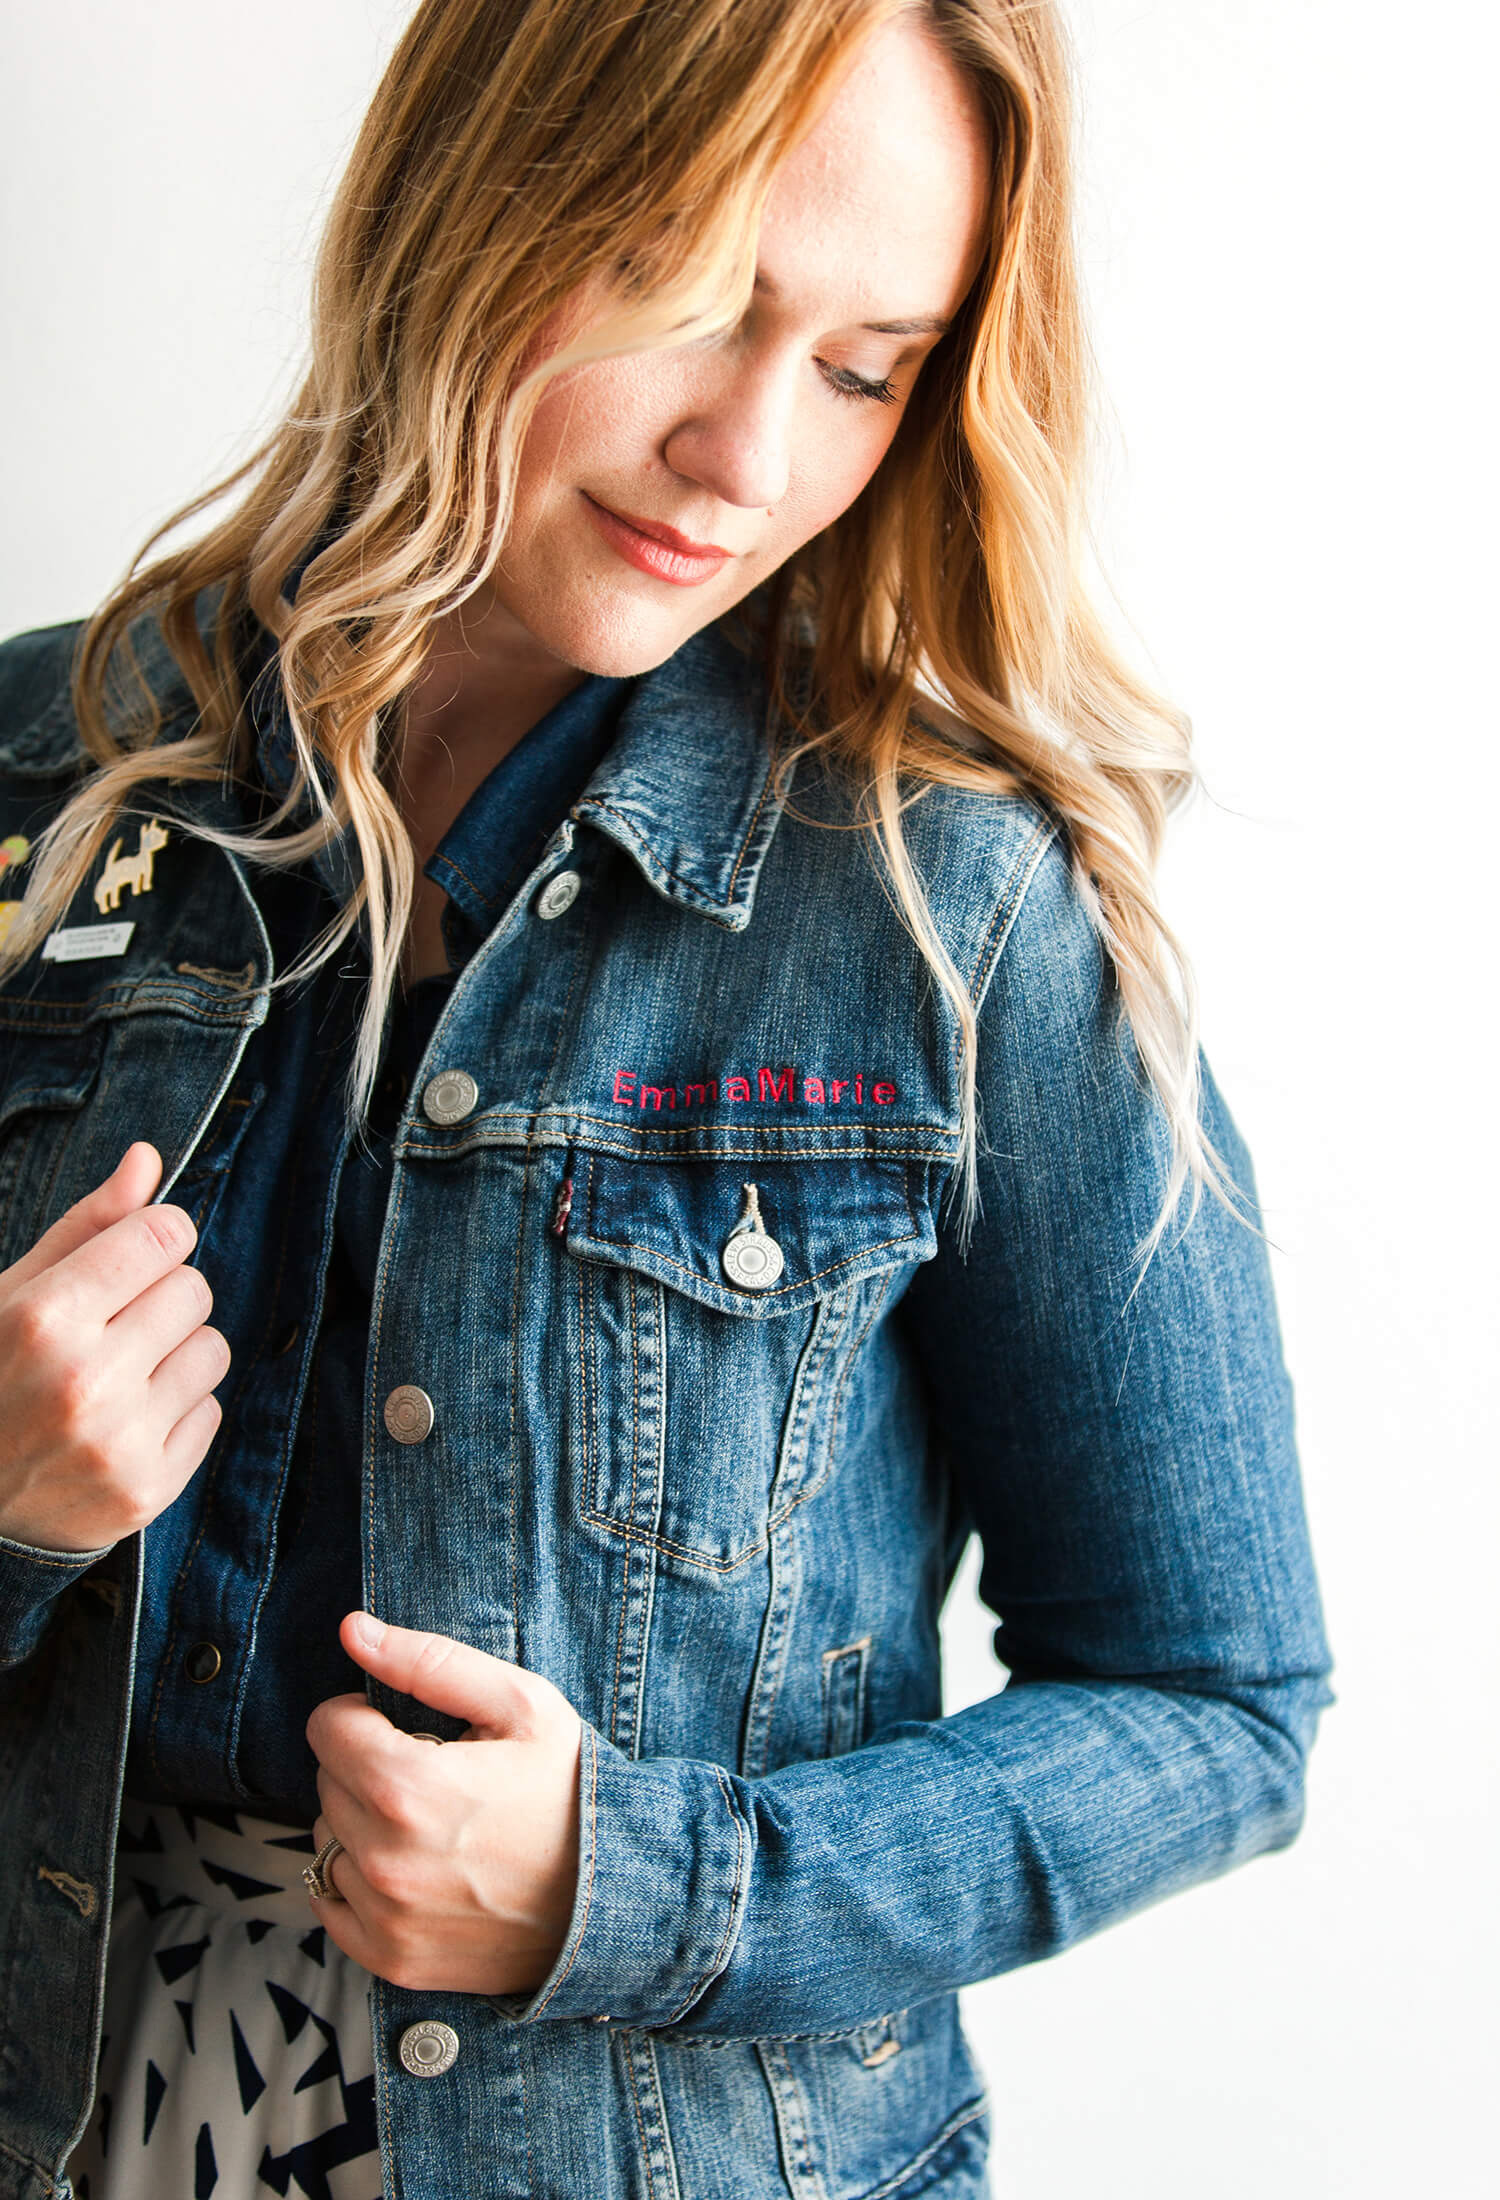 DIY personalized embroidered denim jacket (via abeautifulmess.com)